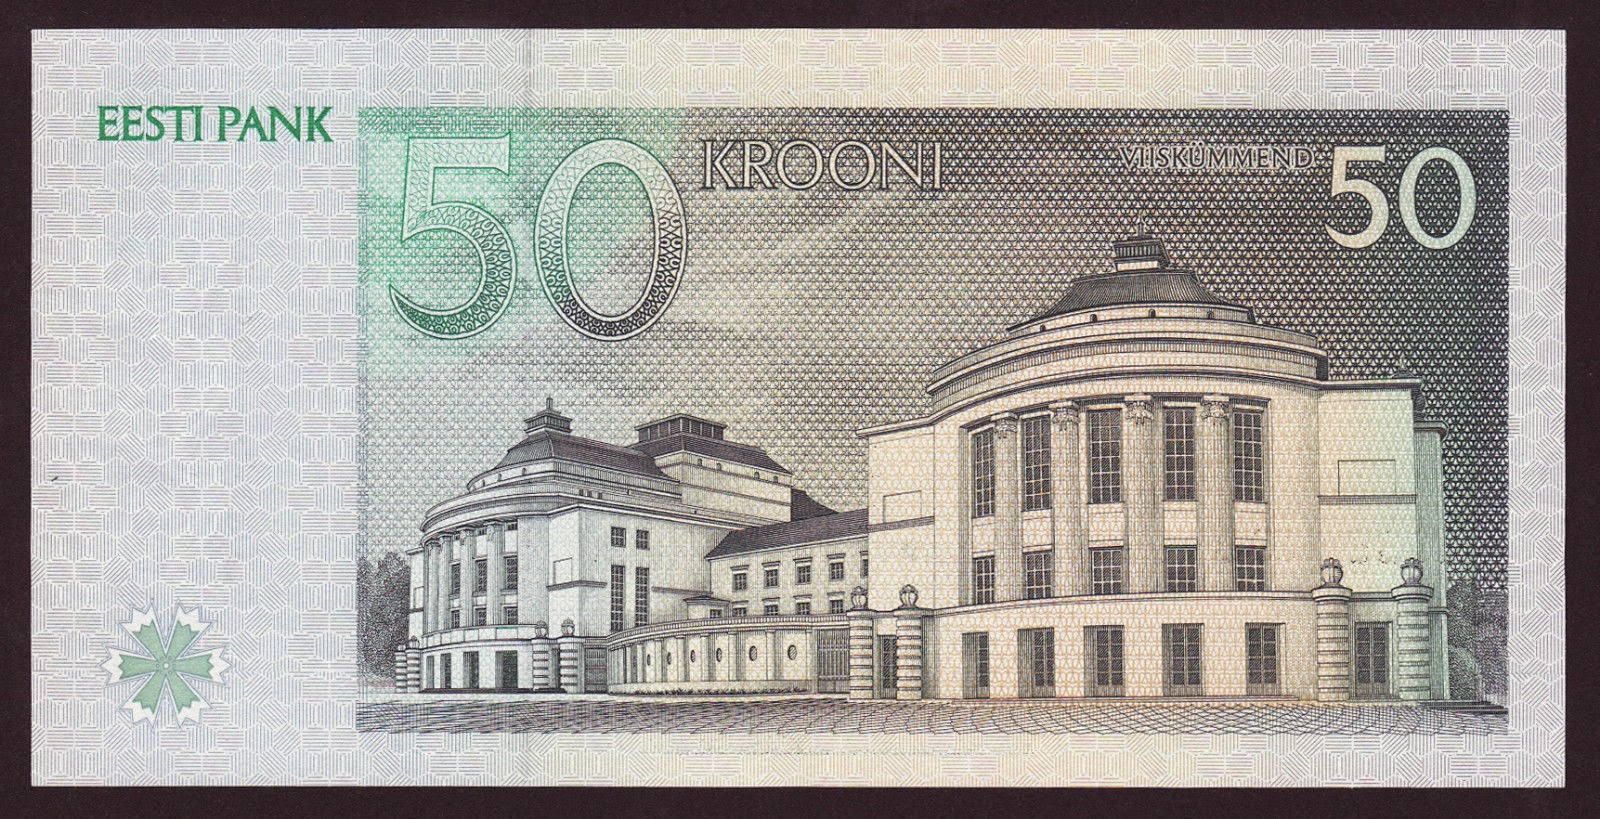 Estonia banknotes 50 krooni note, Estonia Opera House